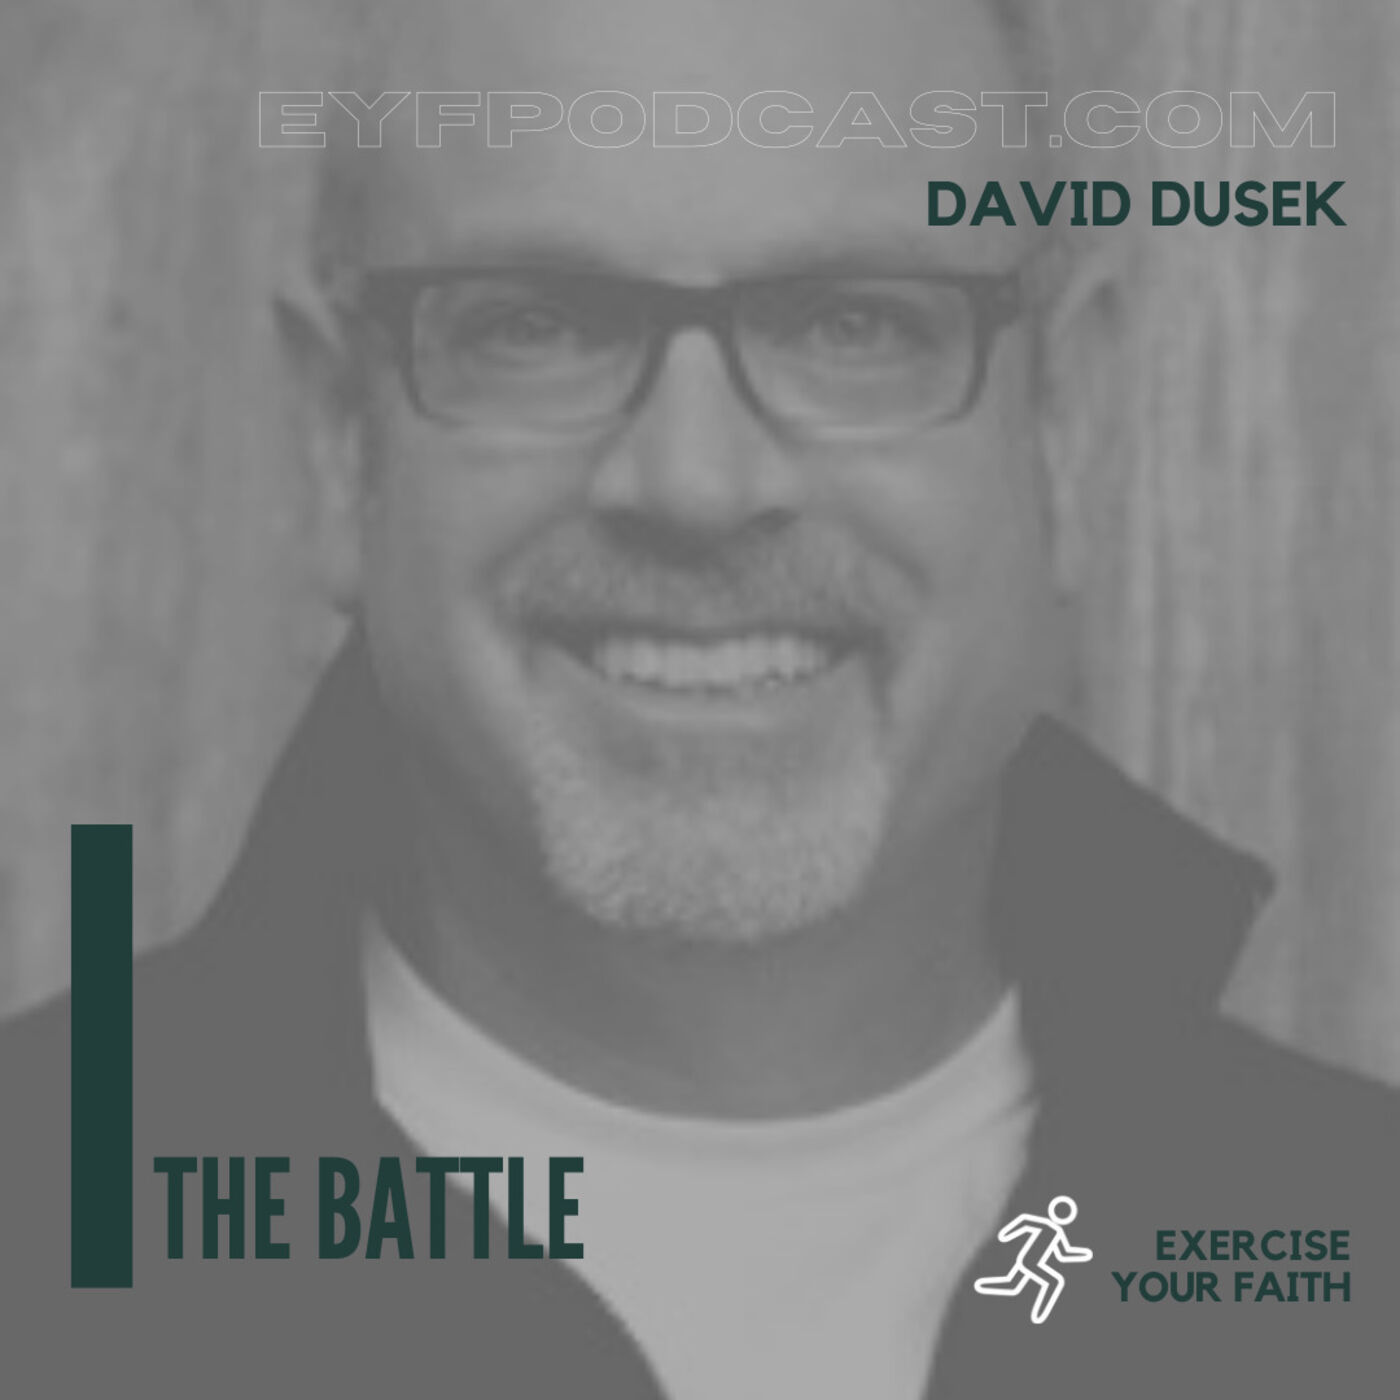 EYFPodcast- Exercise Your Faith by stepping into THE BATTLE with David Dusek